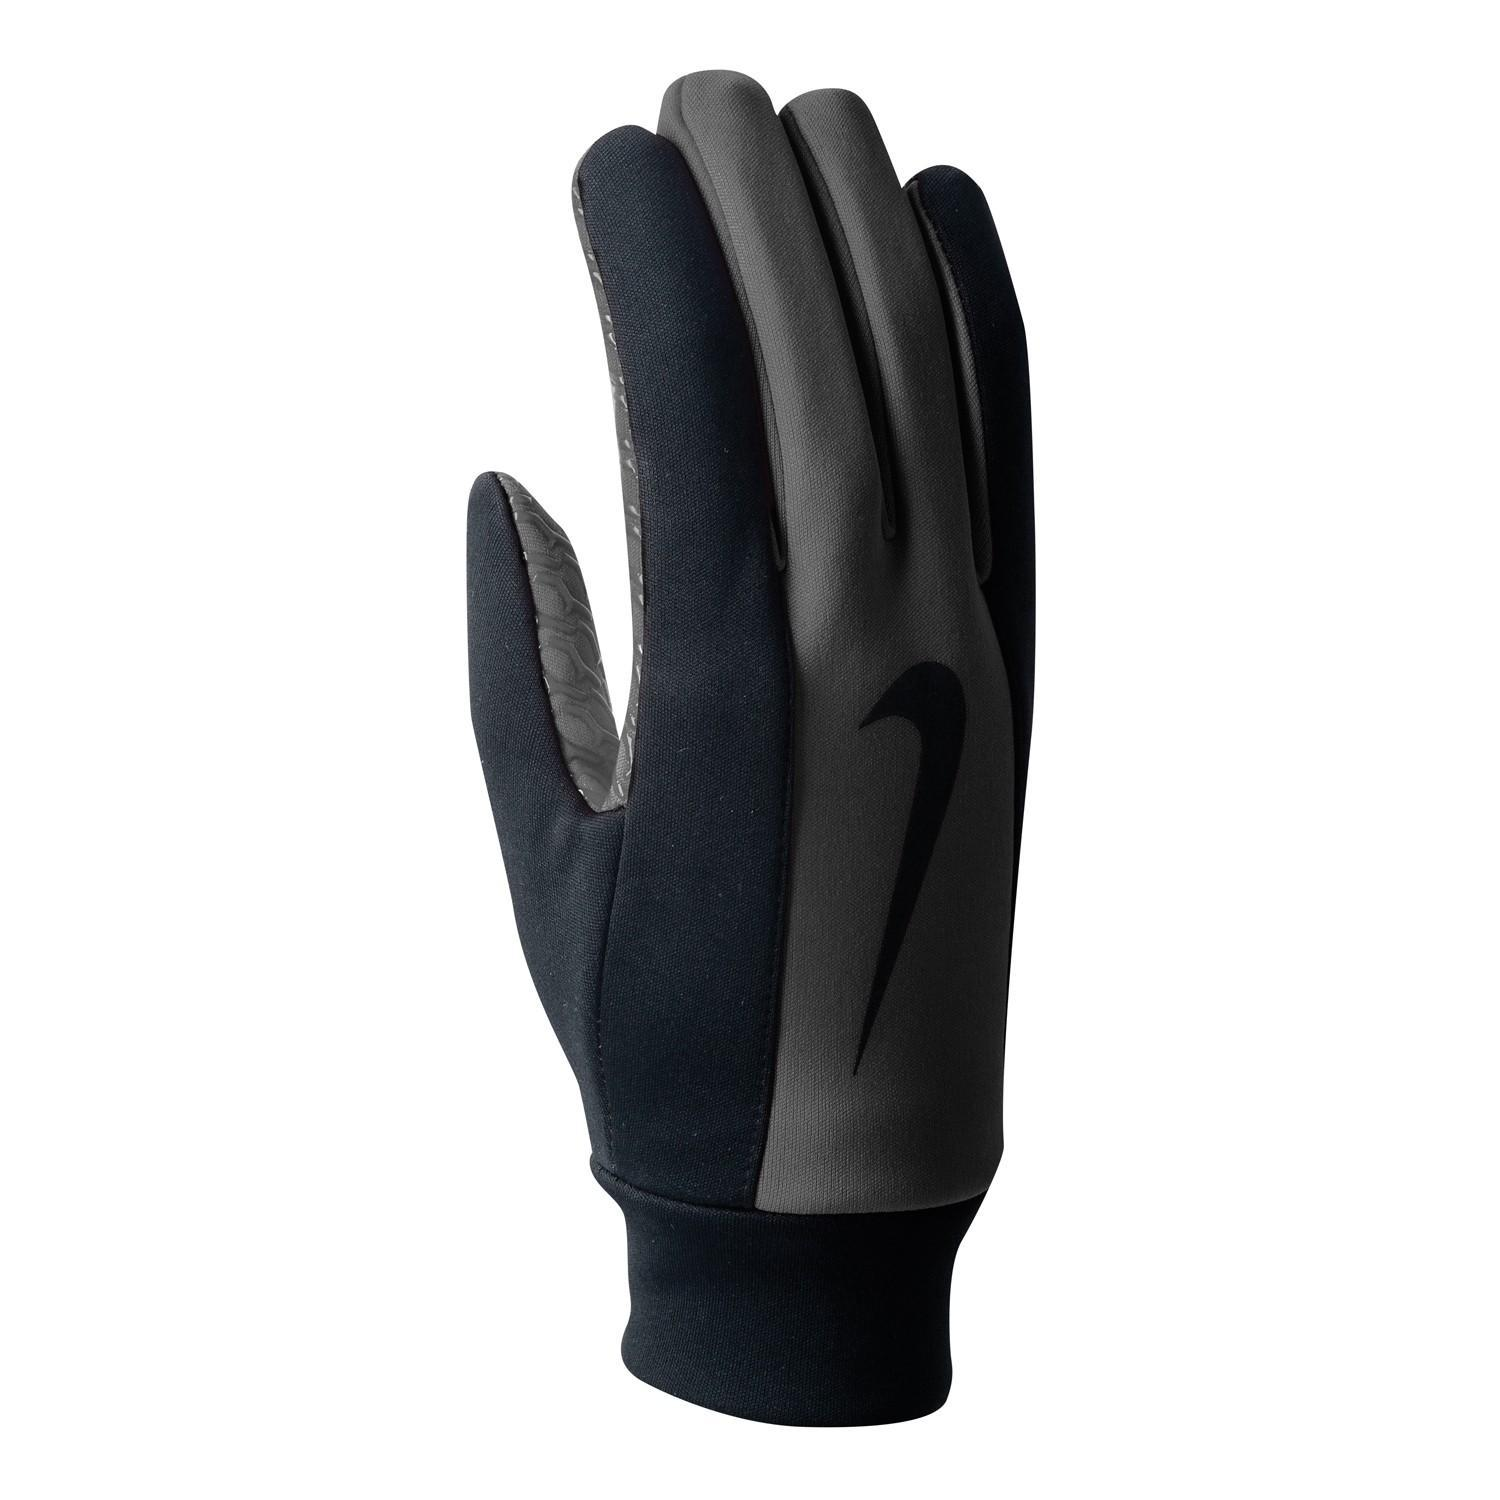 Nike Gloves Sale: Nike Mens Fleece Training Gloves